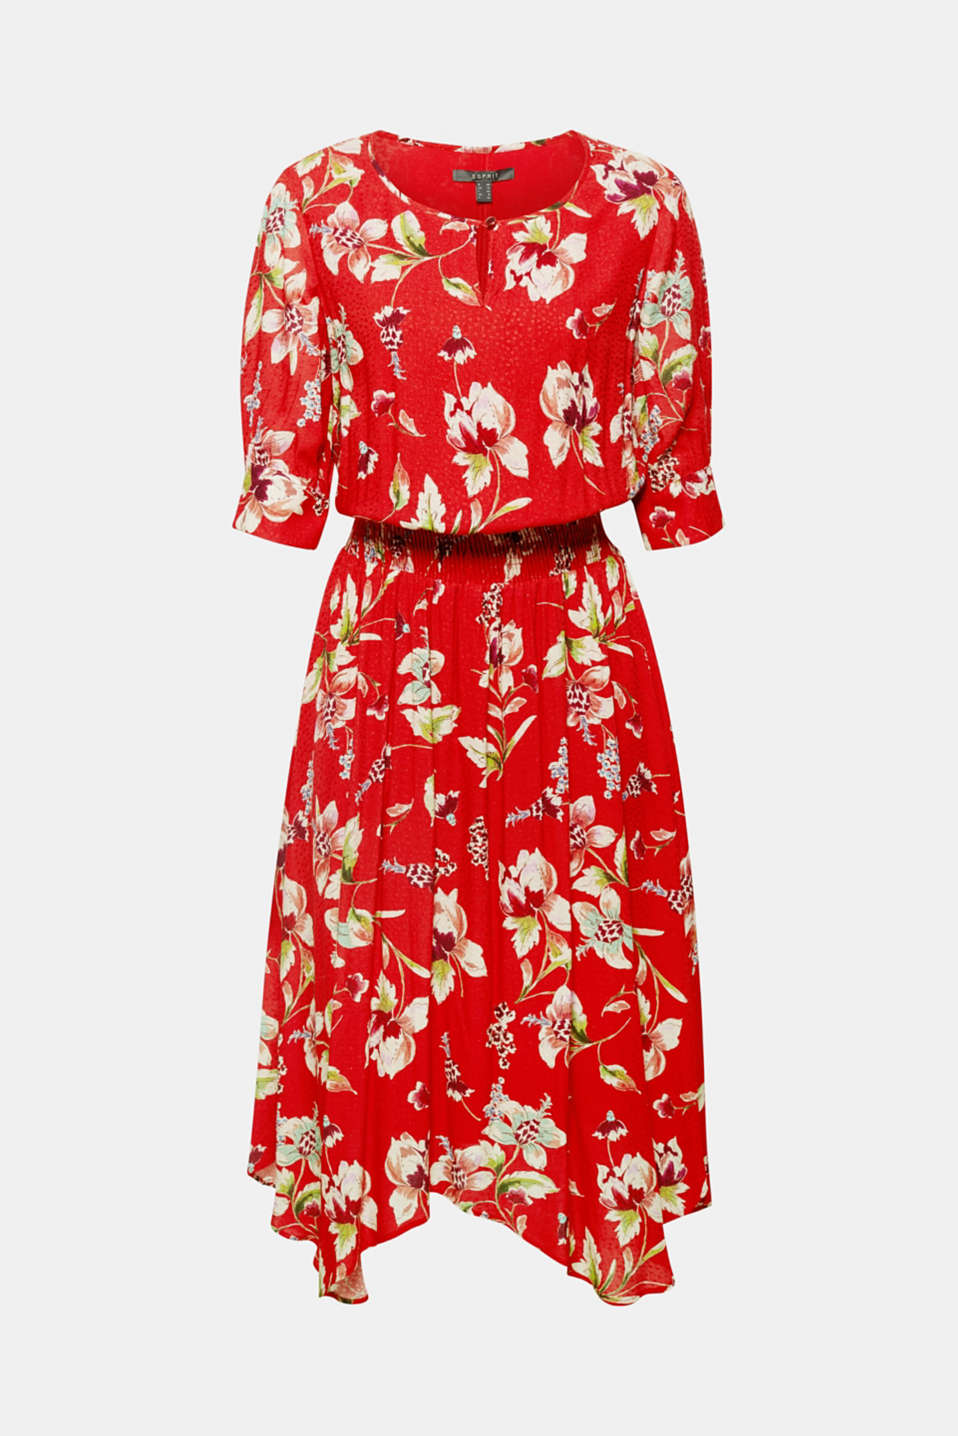 Romantic, feminine and wonderfully floaty – this flowing dress with a floral print, smocked waist and handkerchief hem combines all of the quality that a perfect summer piece should have.